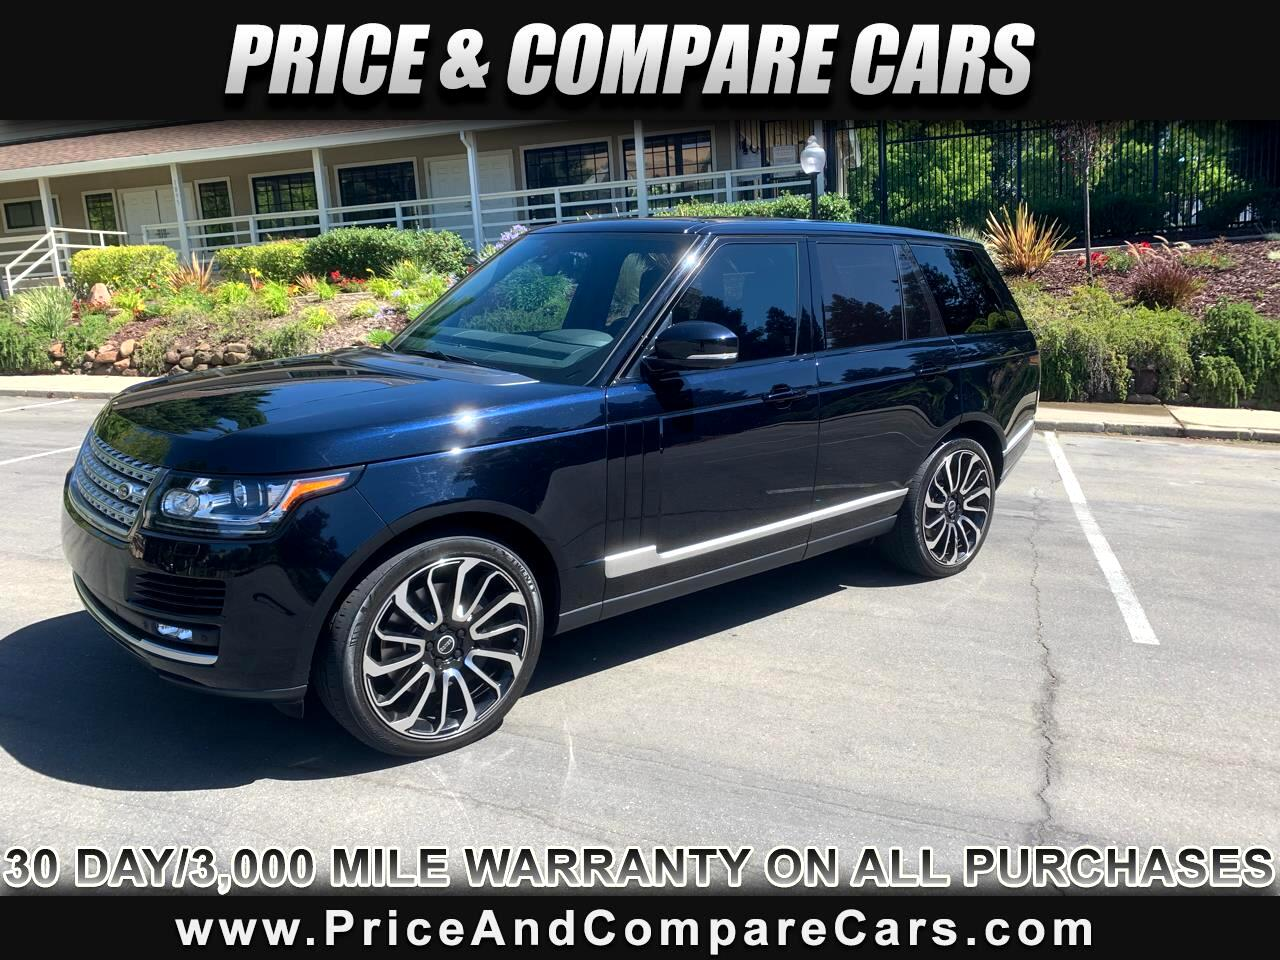 2014 Land Rover Range Rover 5.O V8 EBONY EDITION SUPERCHARGED